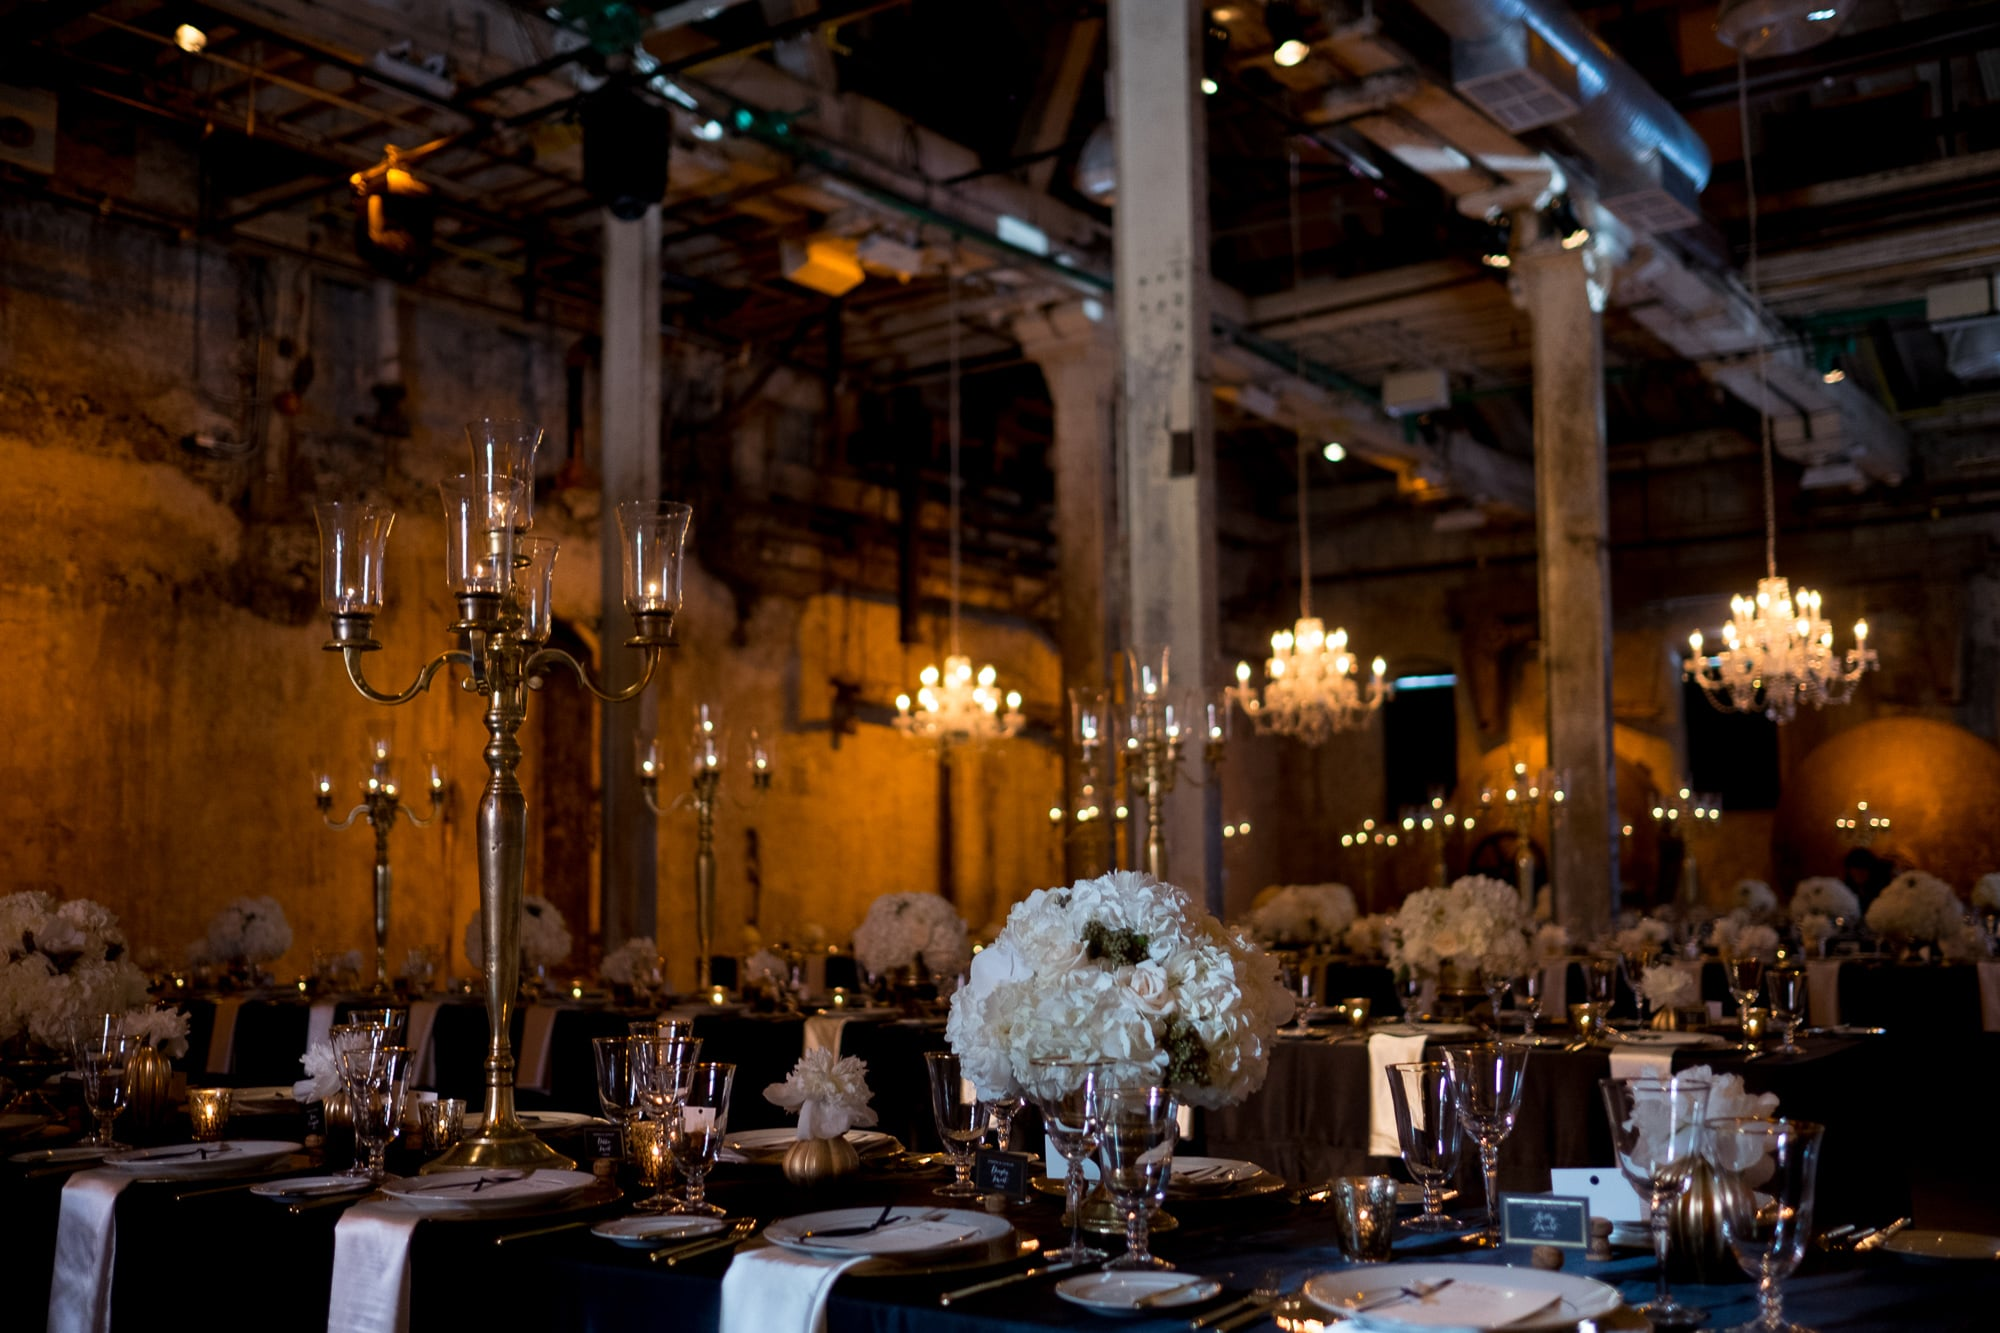 An overal detail shot of the wedding reception location at Toronto's Fermenting Cellar in the Distillery District.